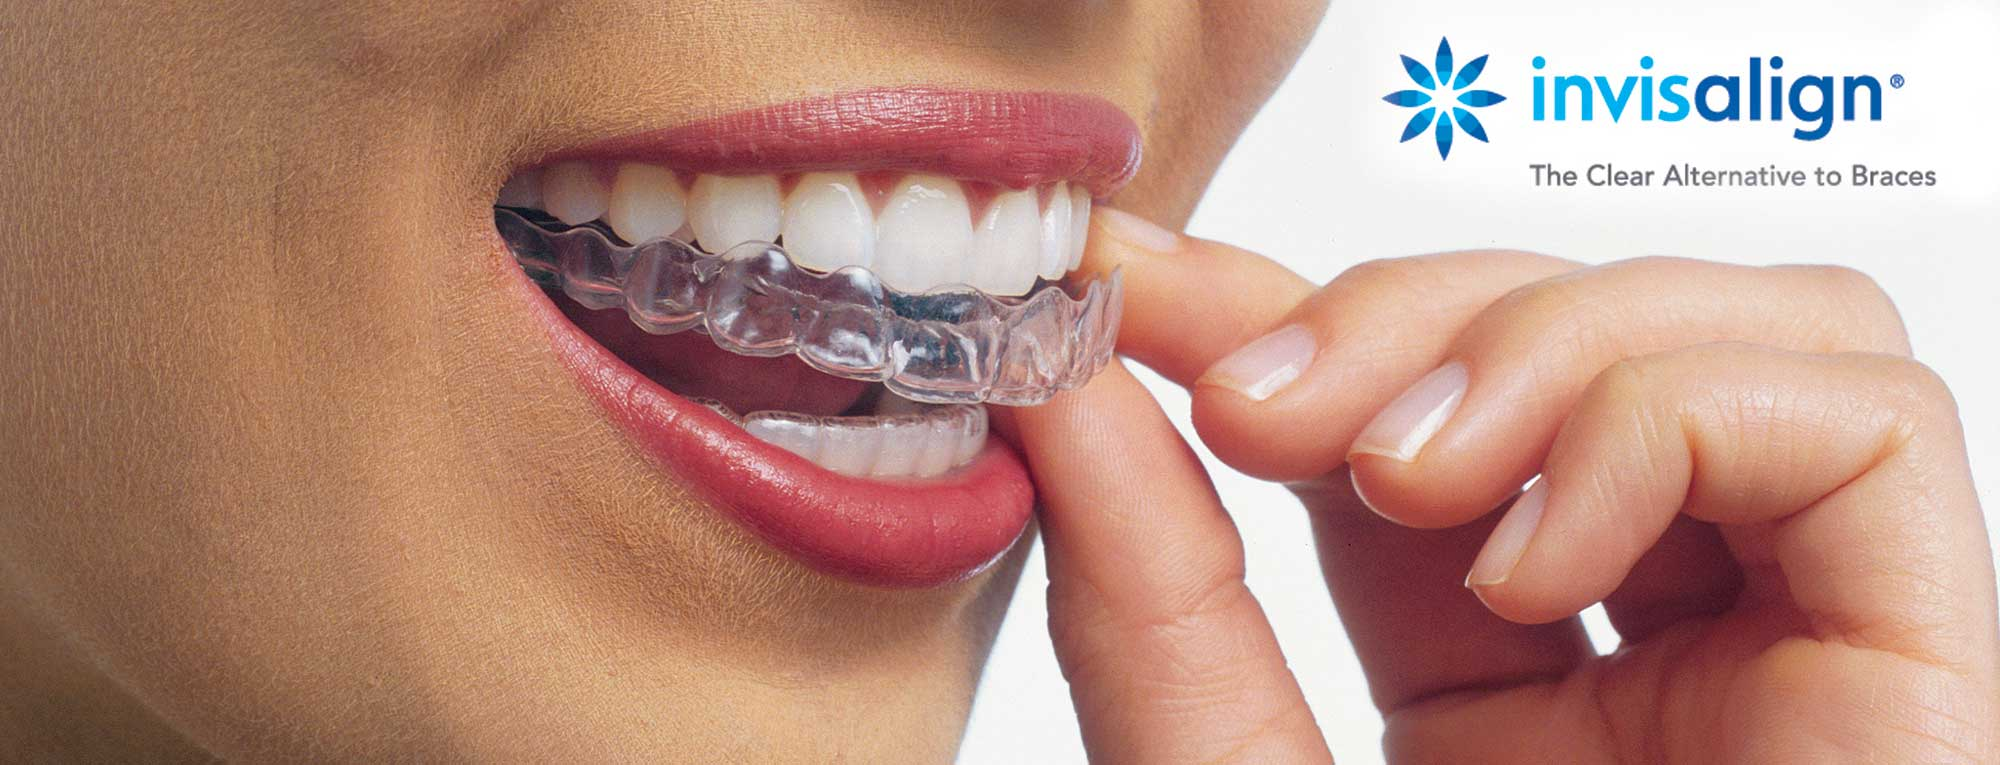 Get a Beautiful Smile Without Braces image